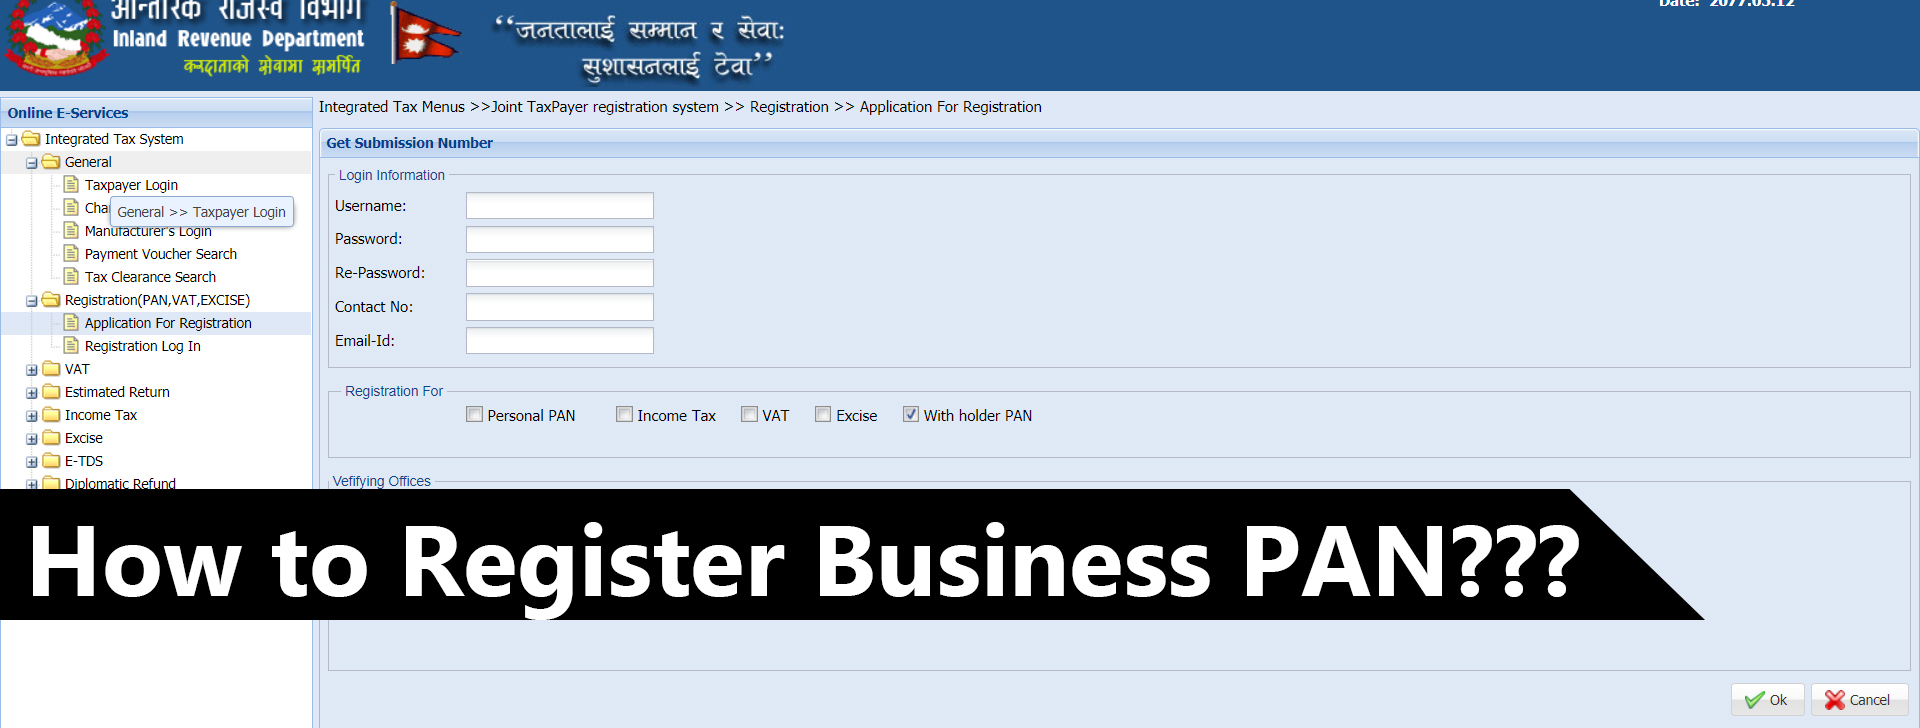 How to register a Business PAN card in Nepal?